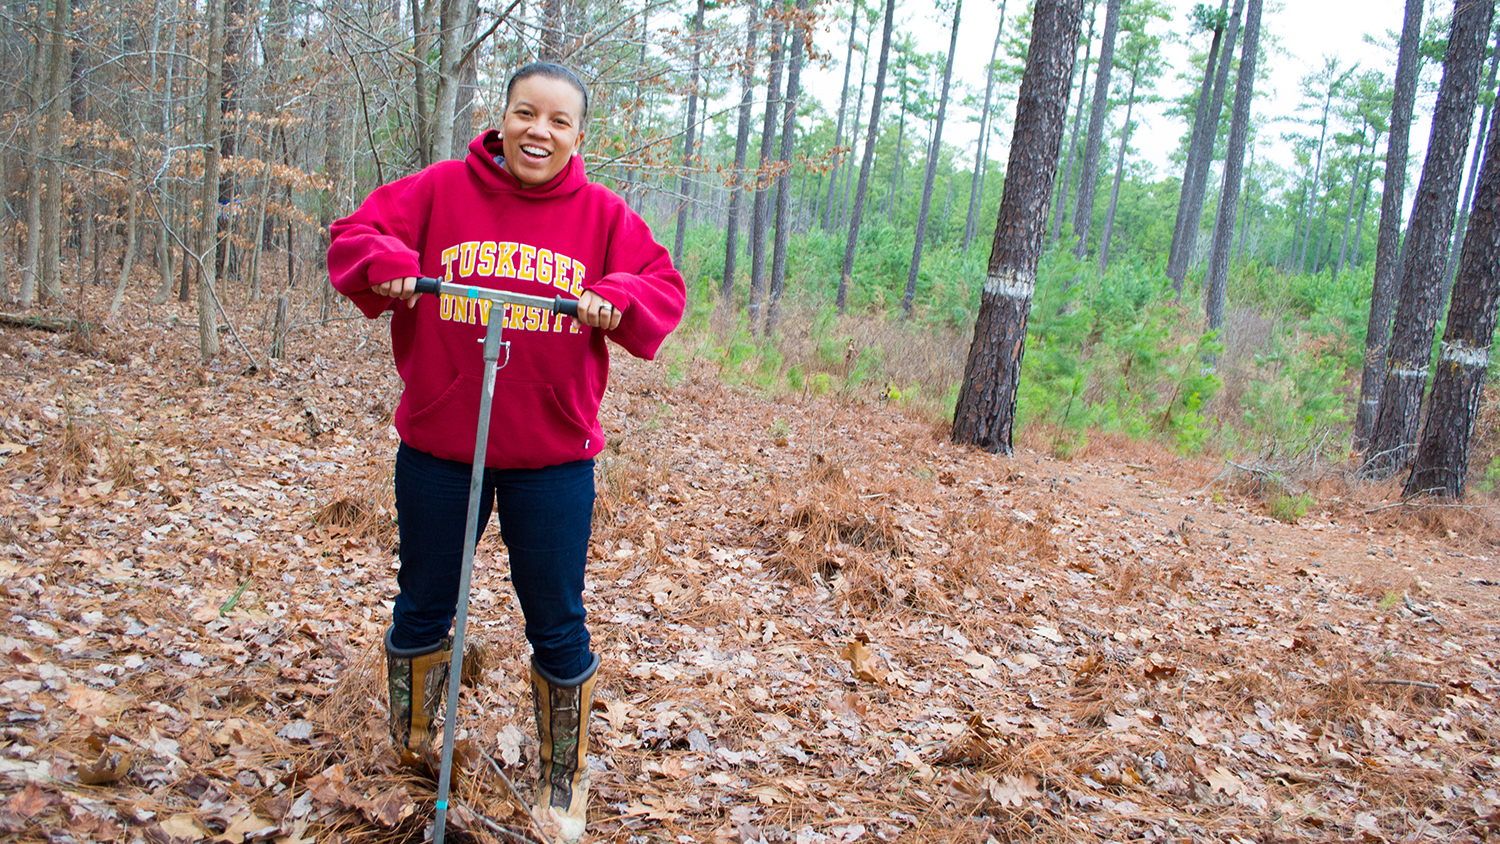 zakiya-1500 - Forestry Prof for Diversity Efforts - Forestry and Environmental Resources NCState University